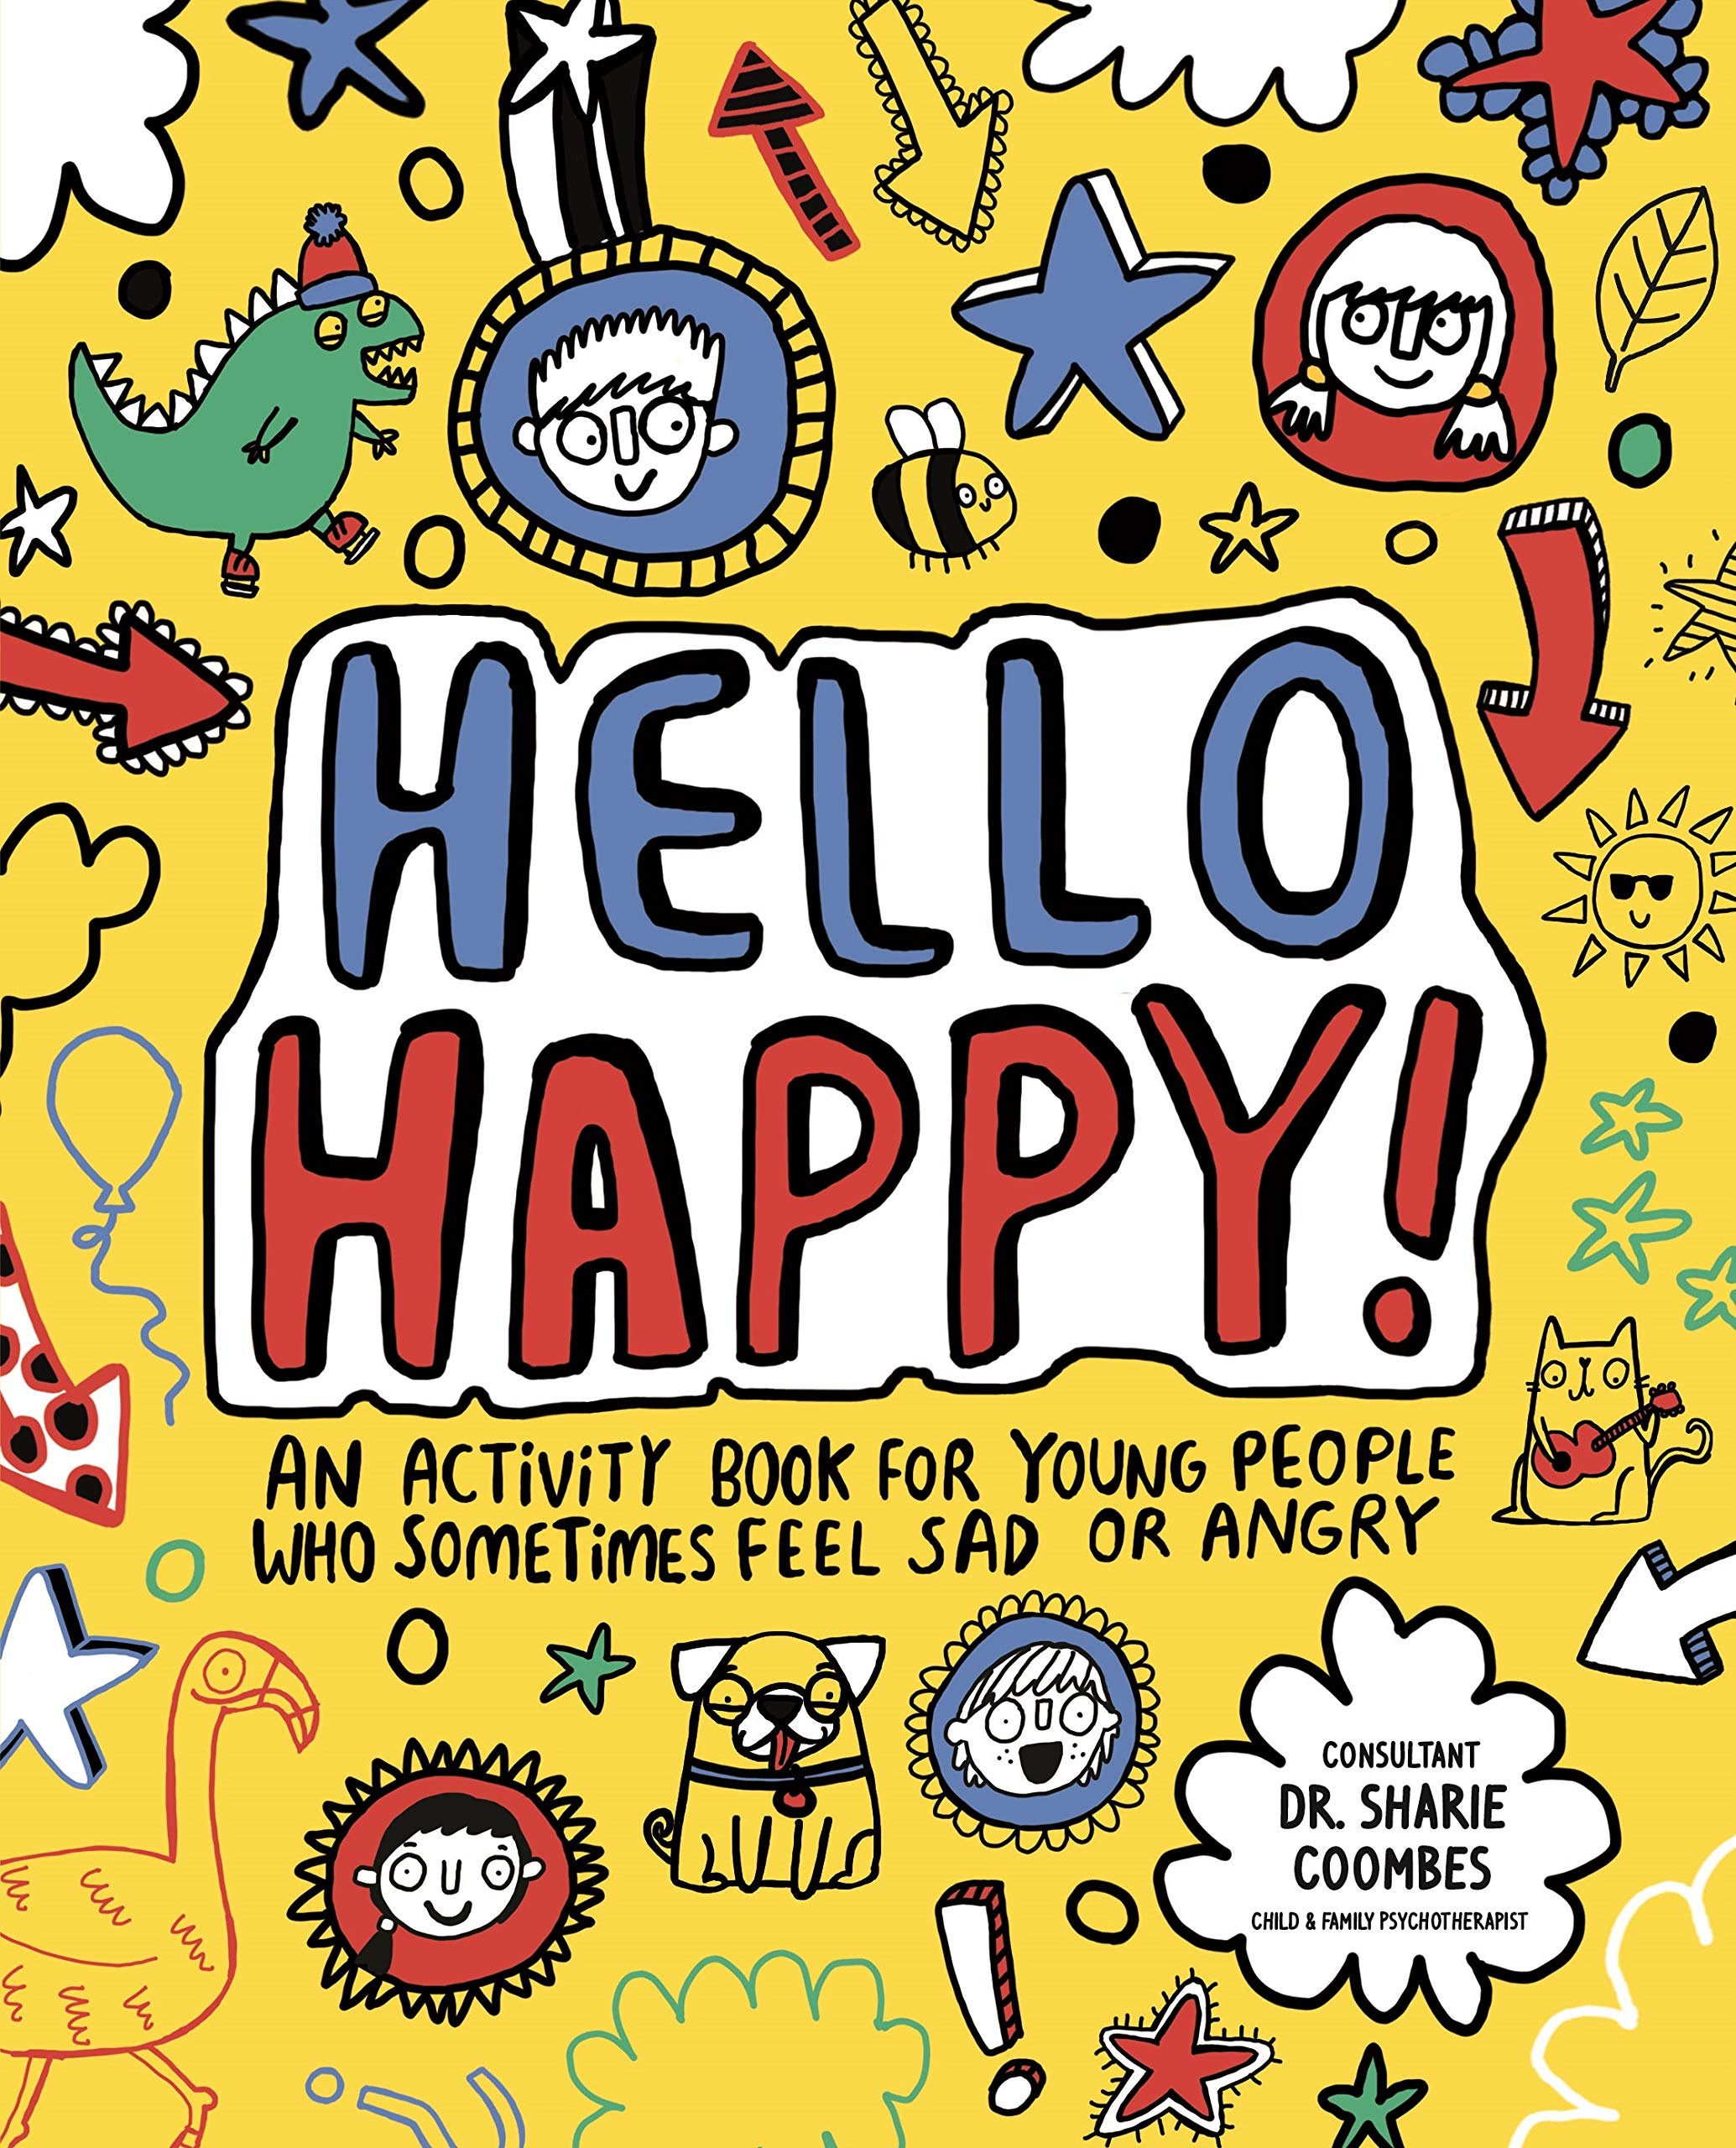 Hello Happy Mindful Kids An Activity Book For Young People Who Sometimes Feel Sad Or Angry 9781783708994 Amazon Com Books